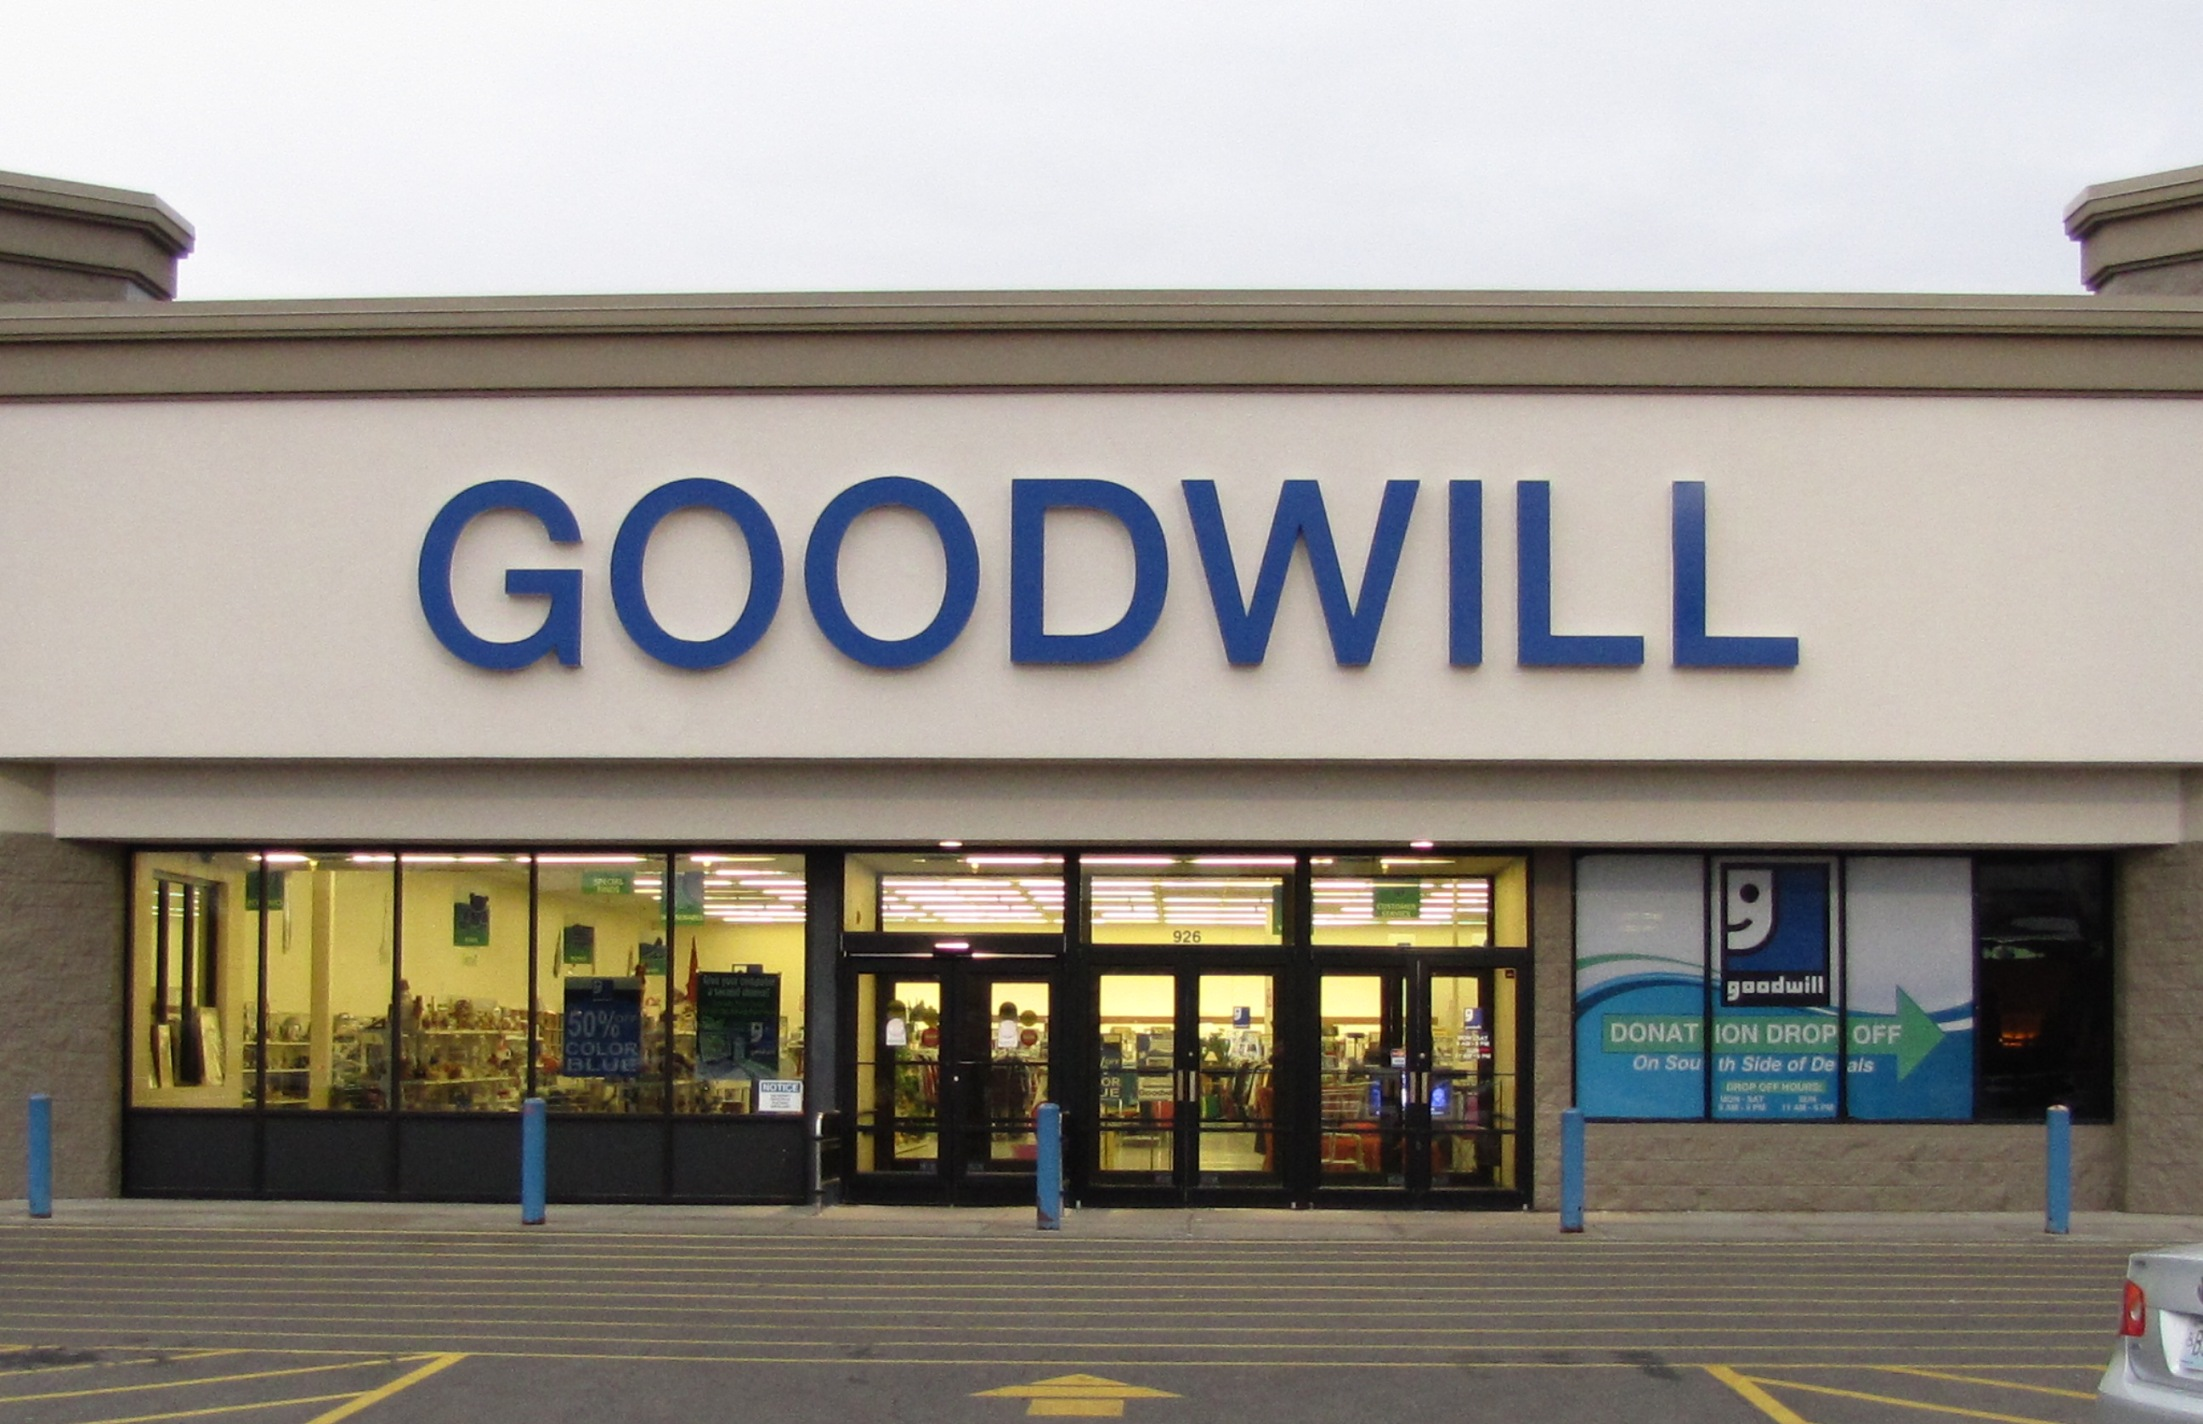 Goodwill hours, Goodwill near me, Goodwill store hours